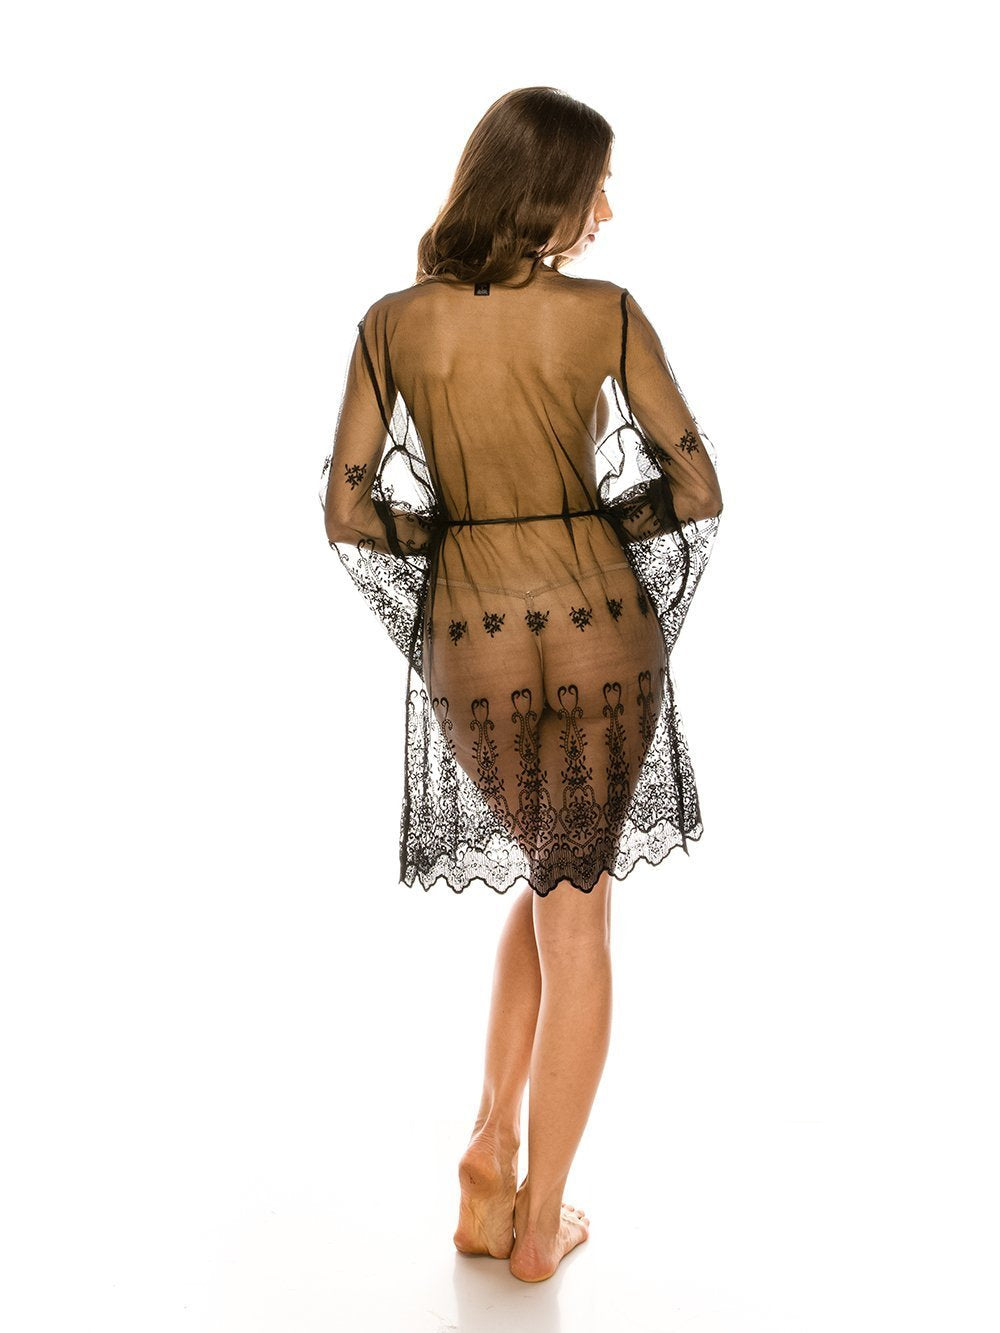 Mesh Robe with Embroidered Sleeves - Youmita Lingerie